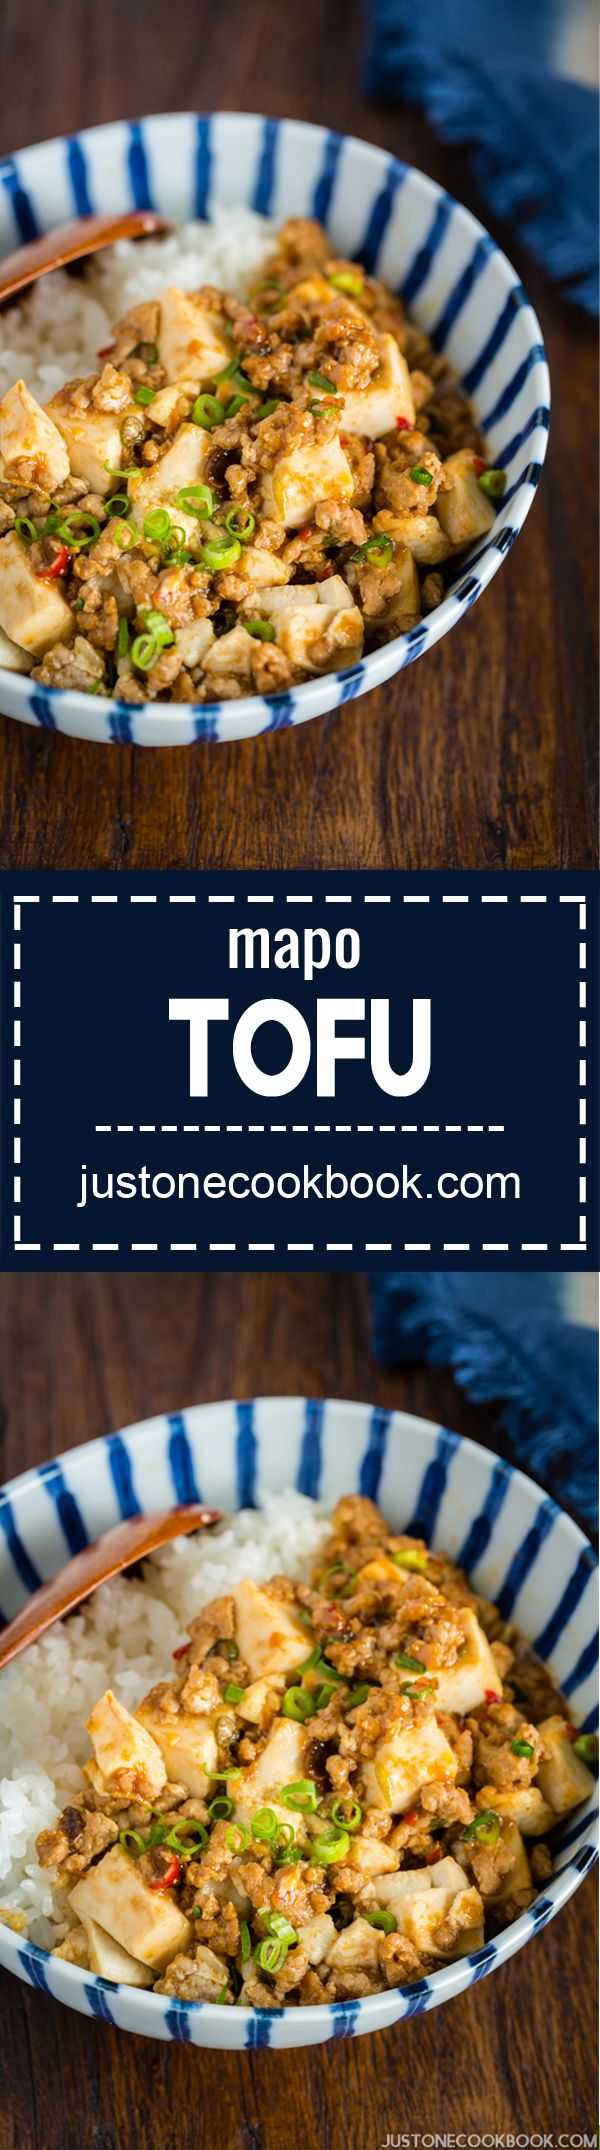 Mapo Tofu (麻婆豆腐) - Japanese Style | Easy Japanese Recipes at JustOneCookbook.com